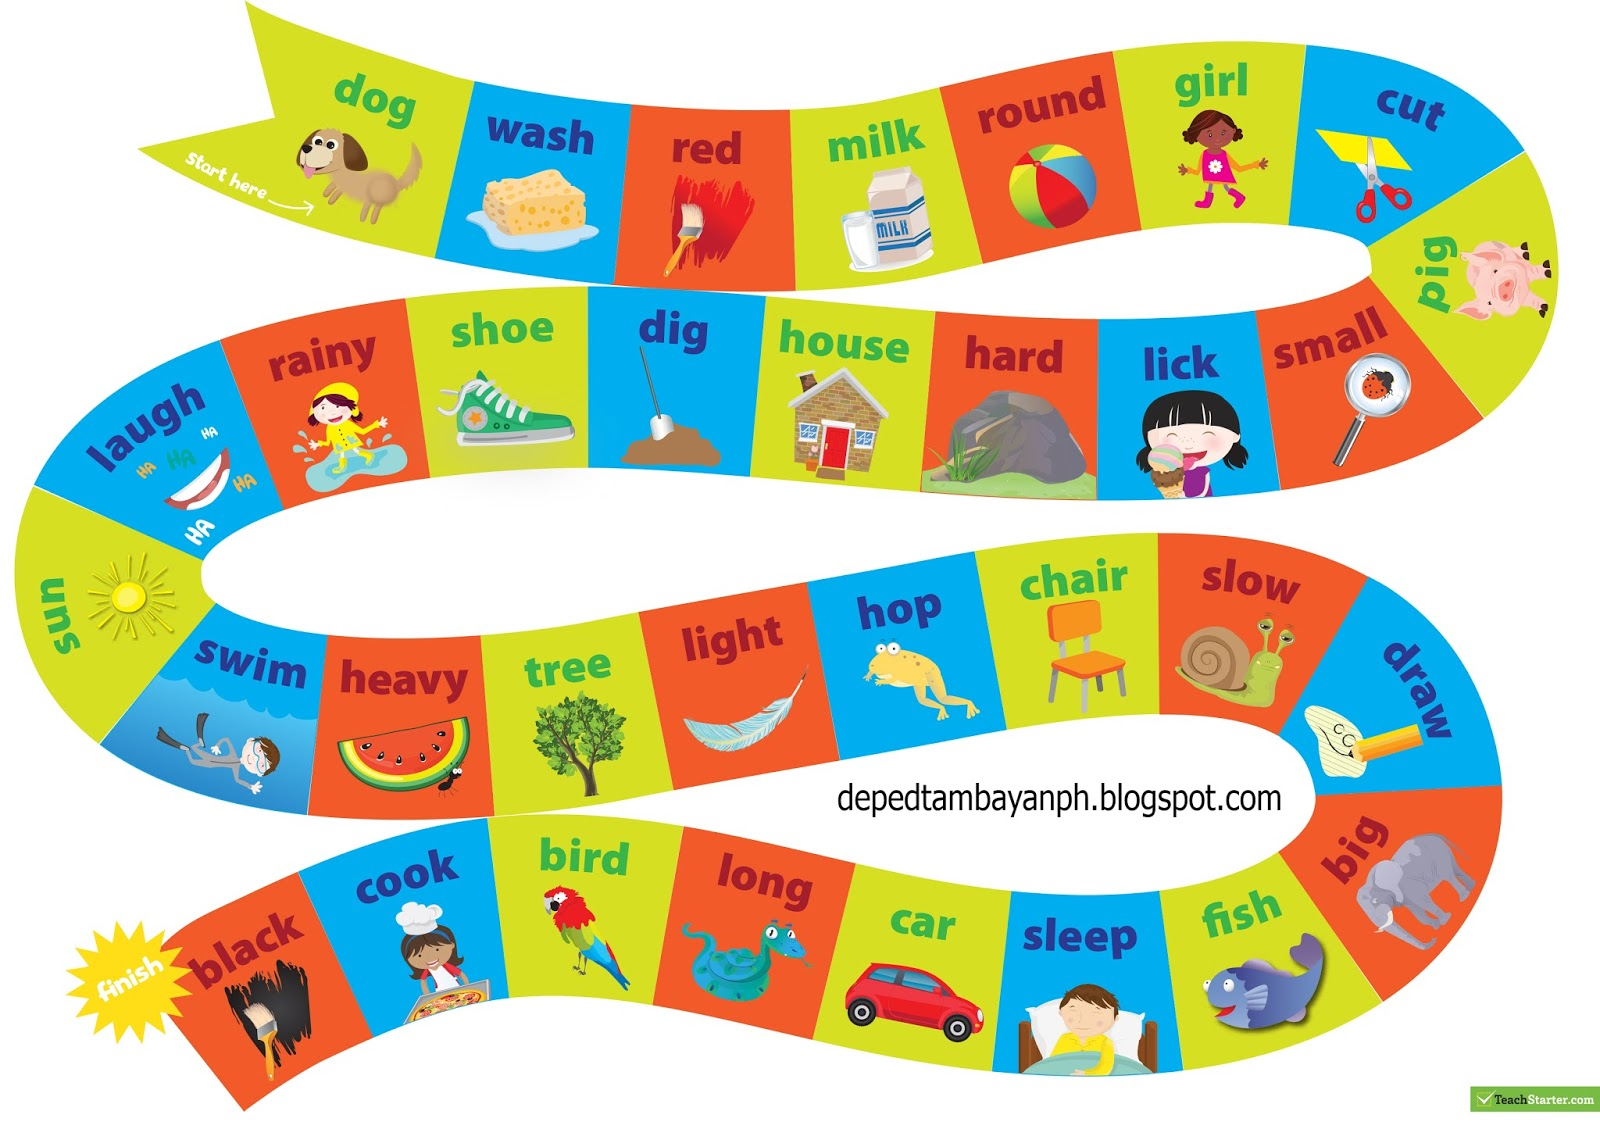 Nouns Verbs And Adjectives Board Game